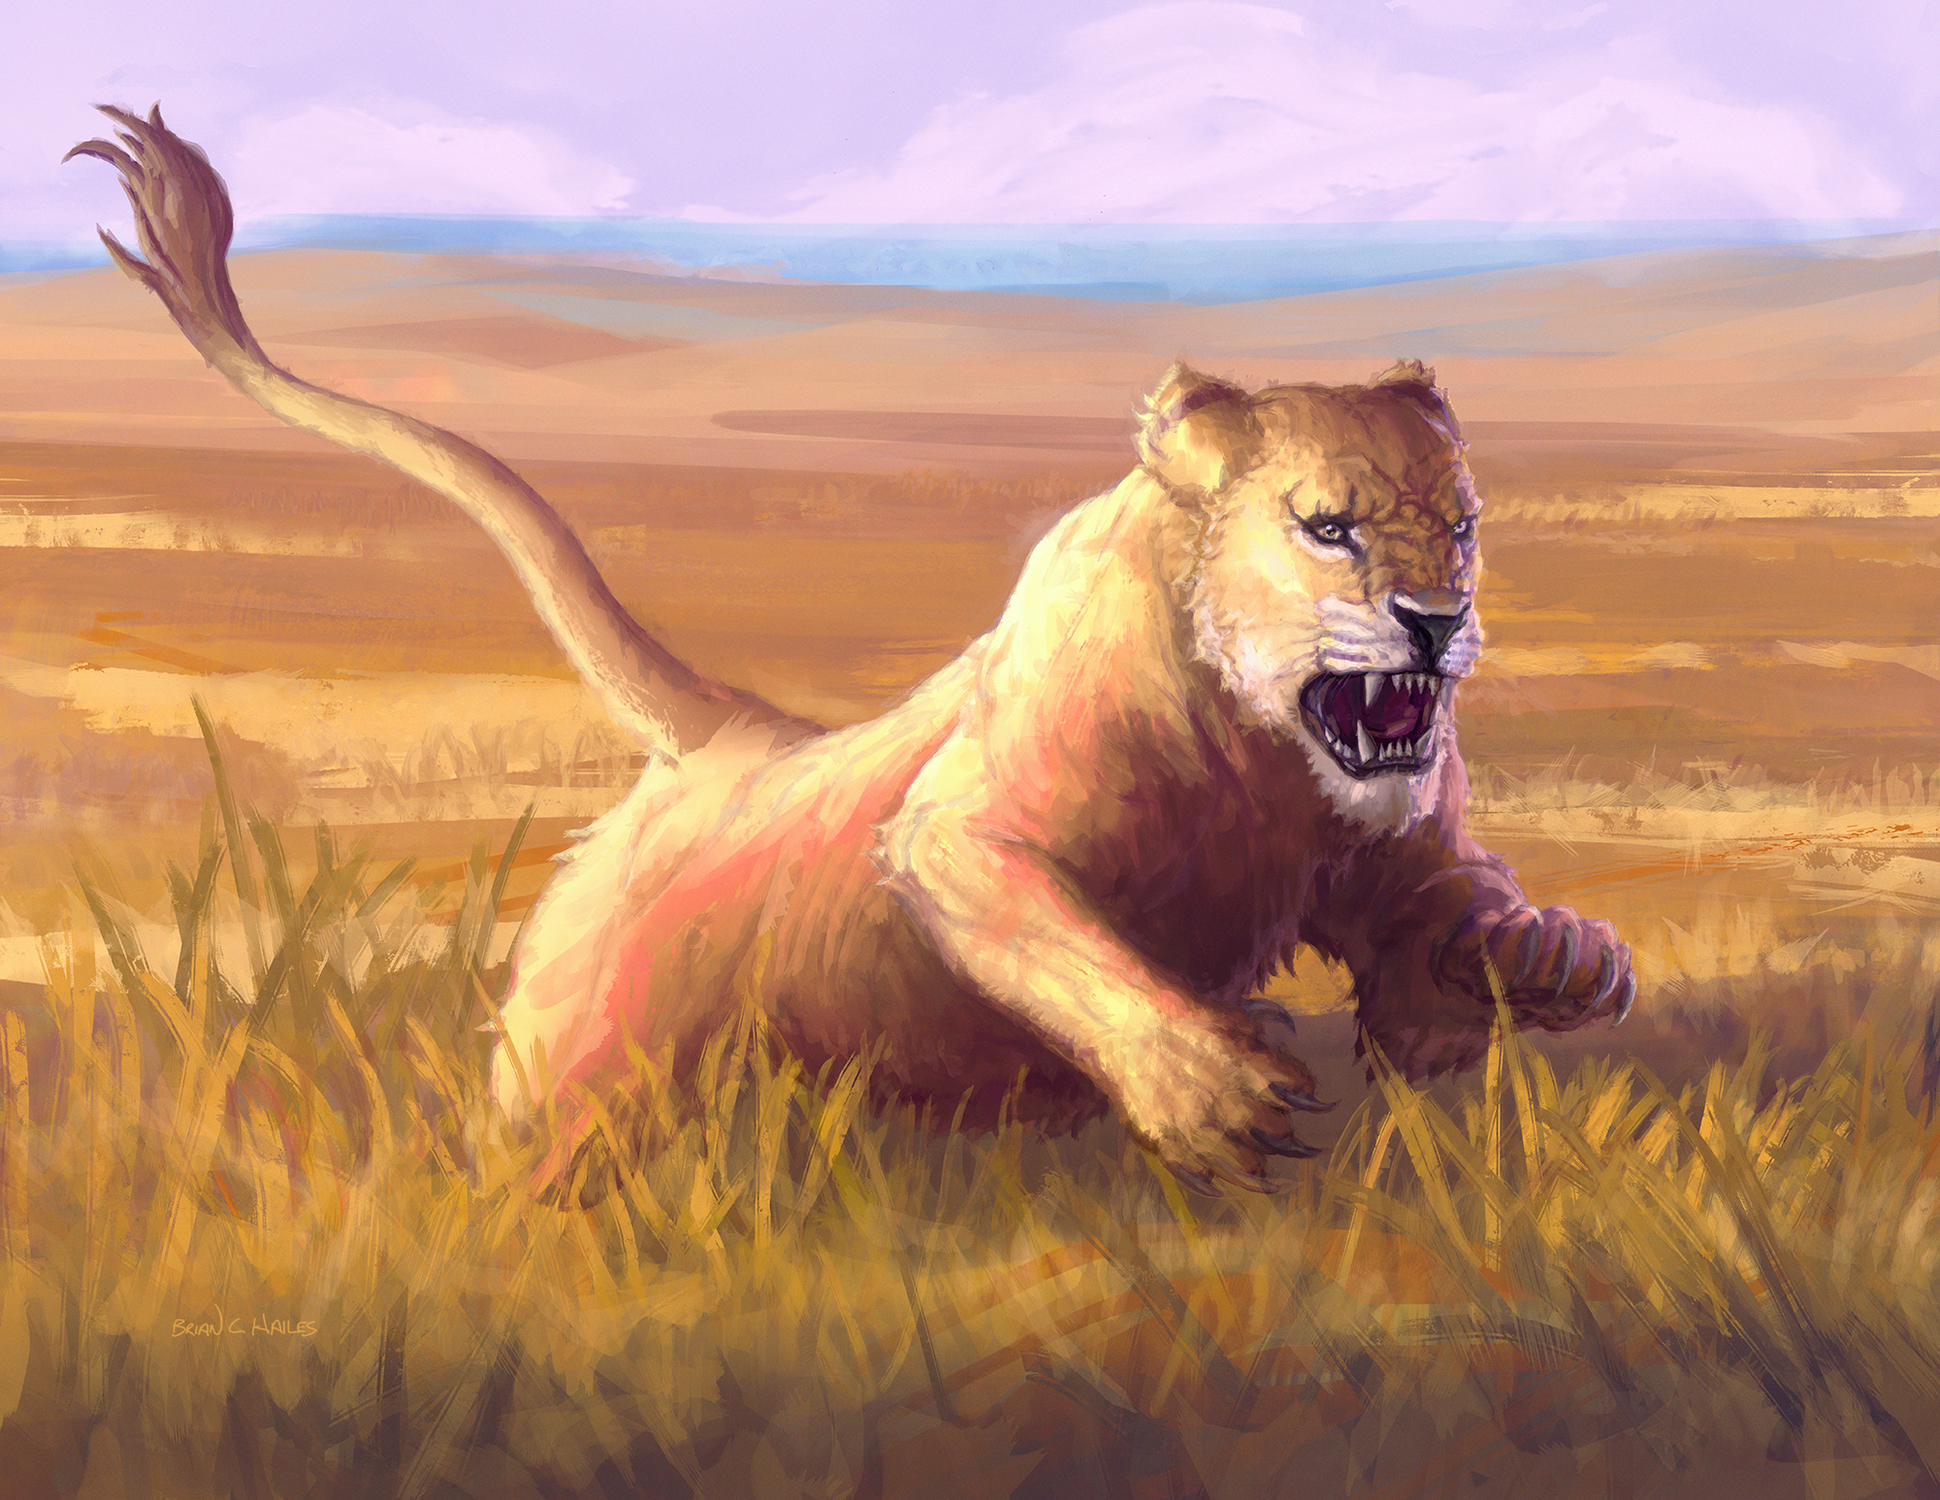 Lioness Artwork by Brian C. Hailes